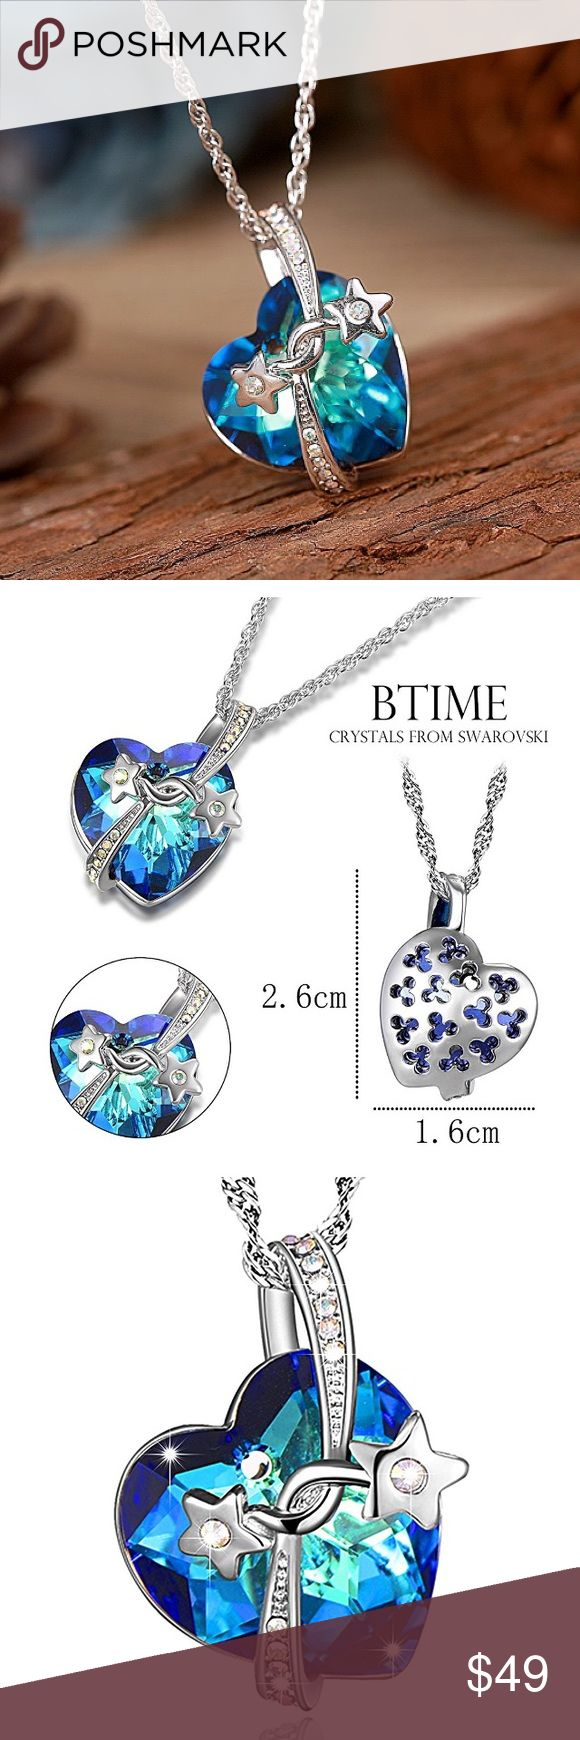 "NIB Heart Pendant Necklace Crystals from Swarovski NEW IN BOX ""Heart of the Ocean"" Engraved Bermuda Blue Heart Pendant Necklace Crystals from Swarovski DLS7314 Jewelry Necklaces"